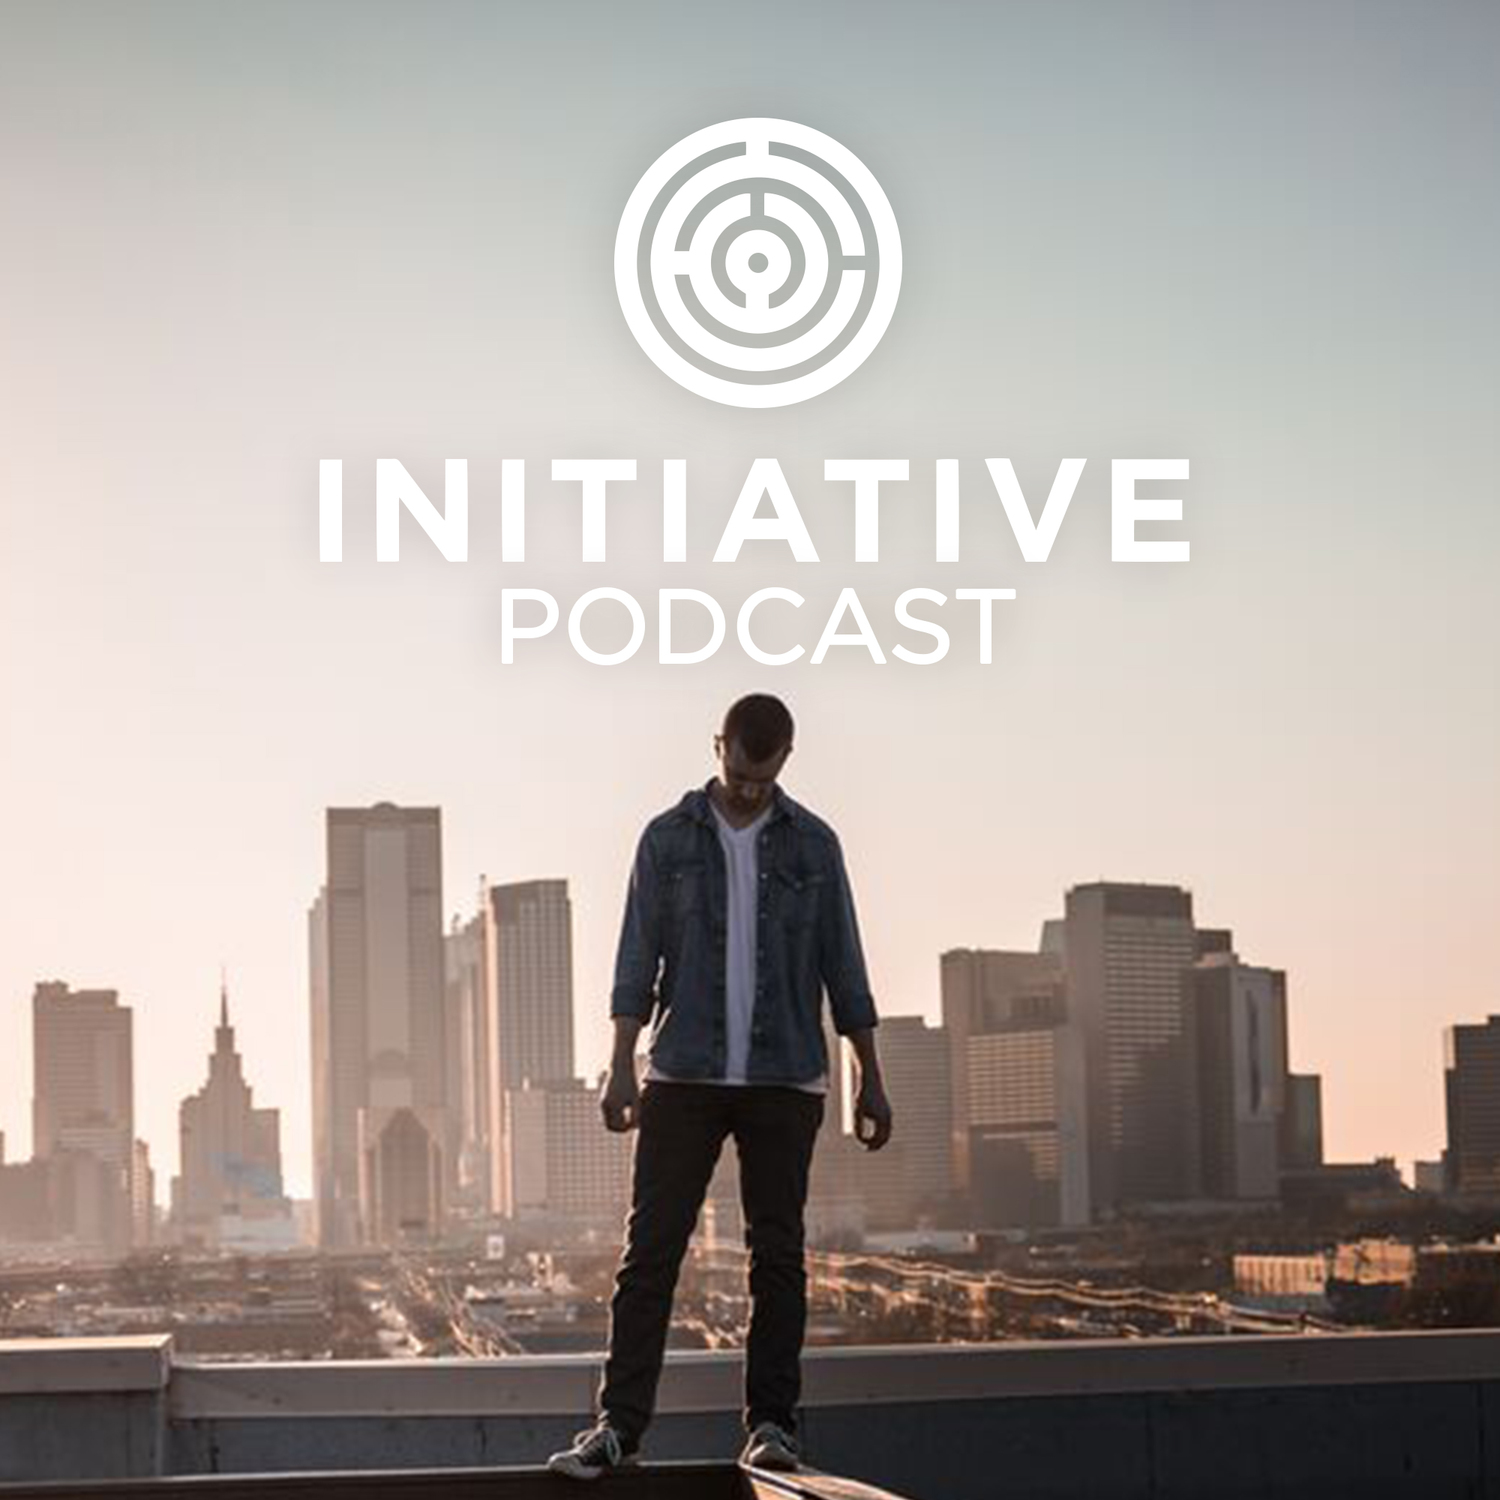 PODCAST - INITIATIVE NETWORK